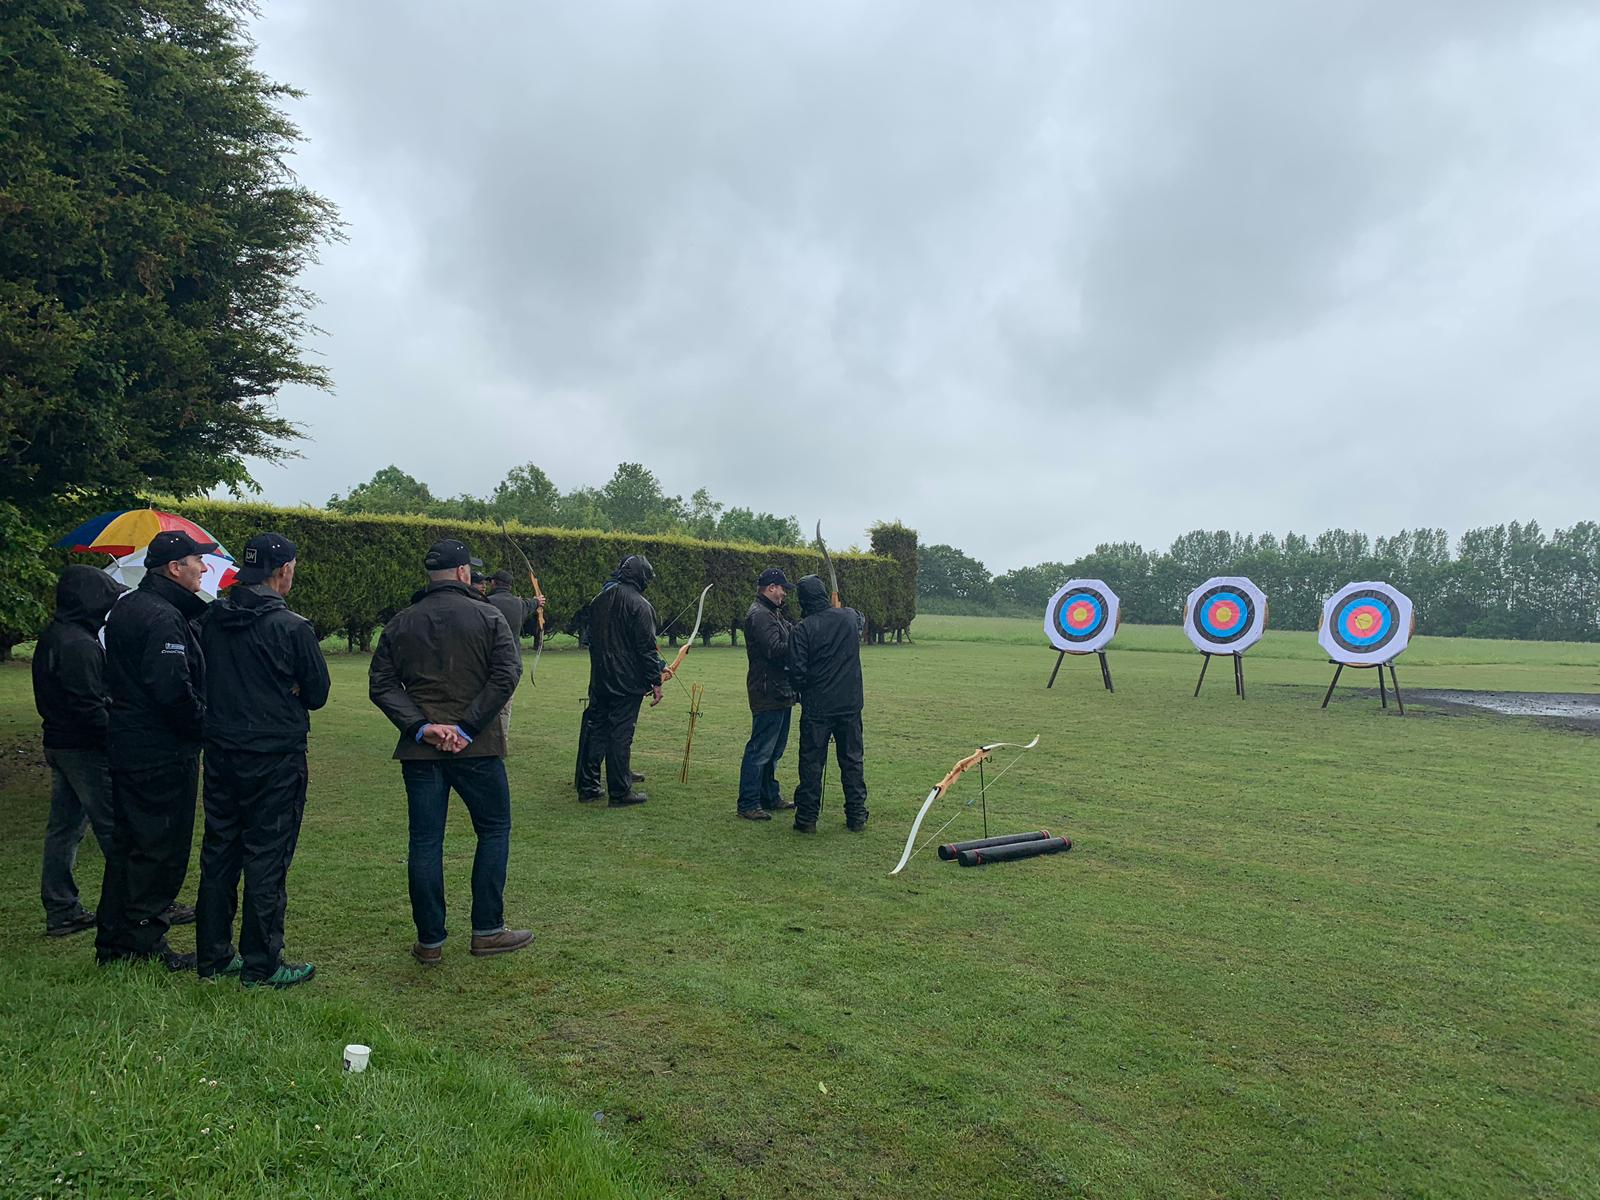 Archery corporate entertainment event at Lady's Wood Shooting School